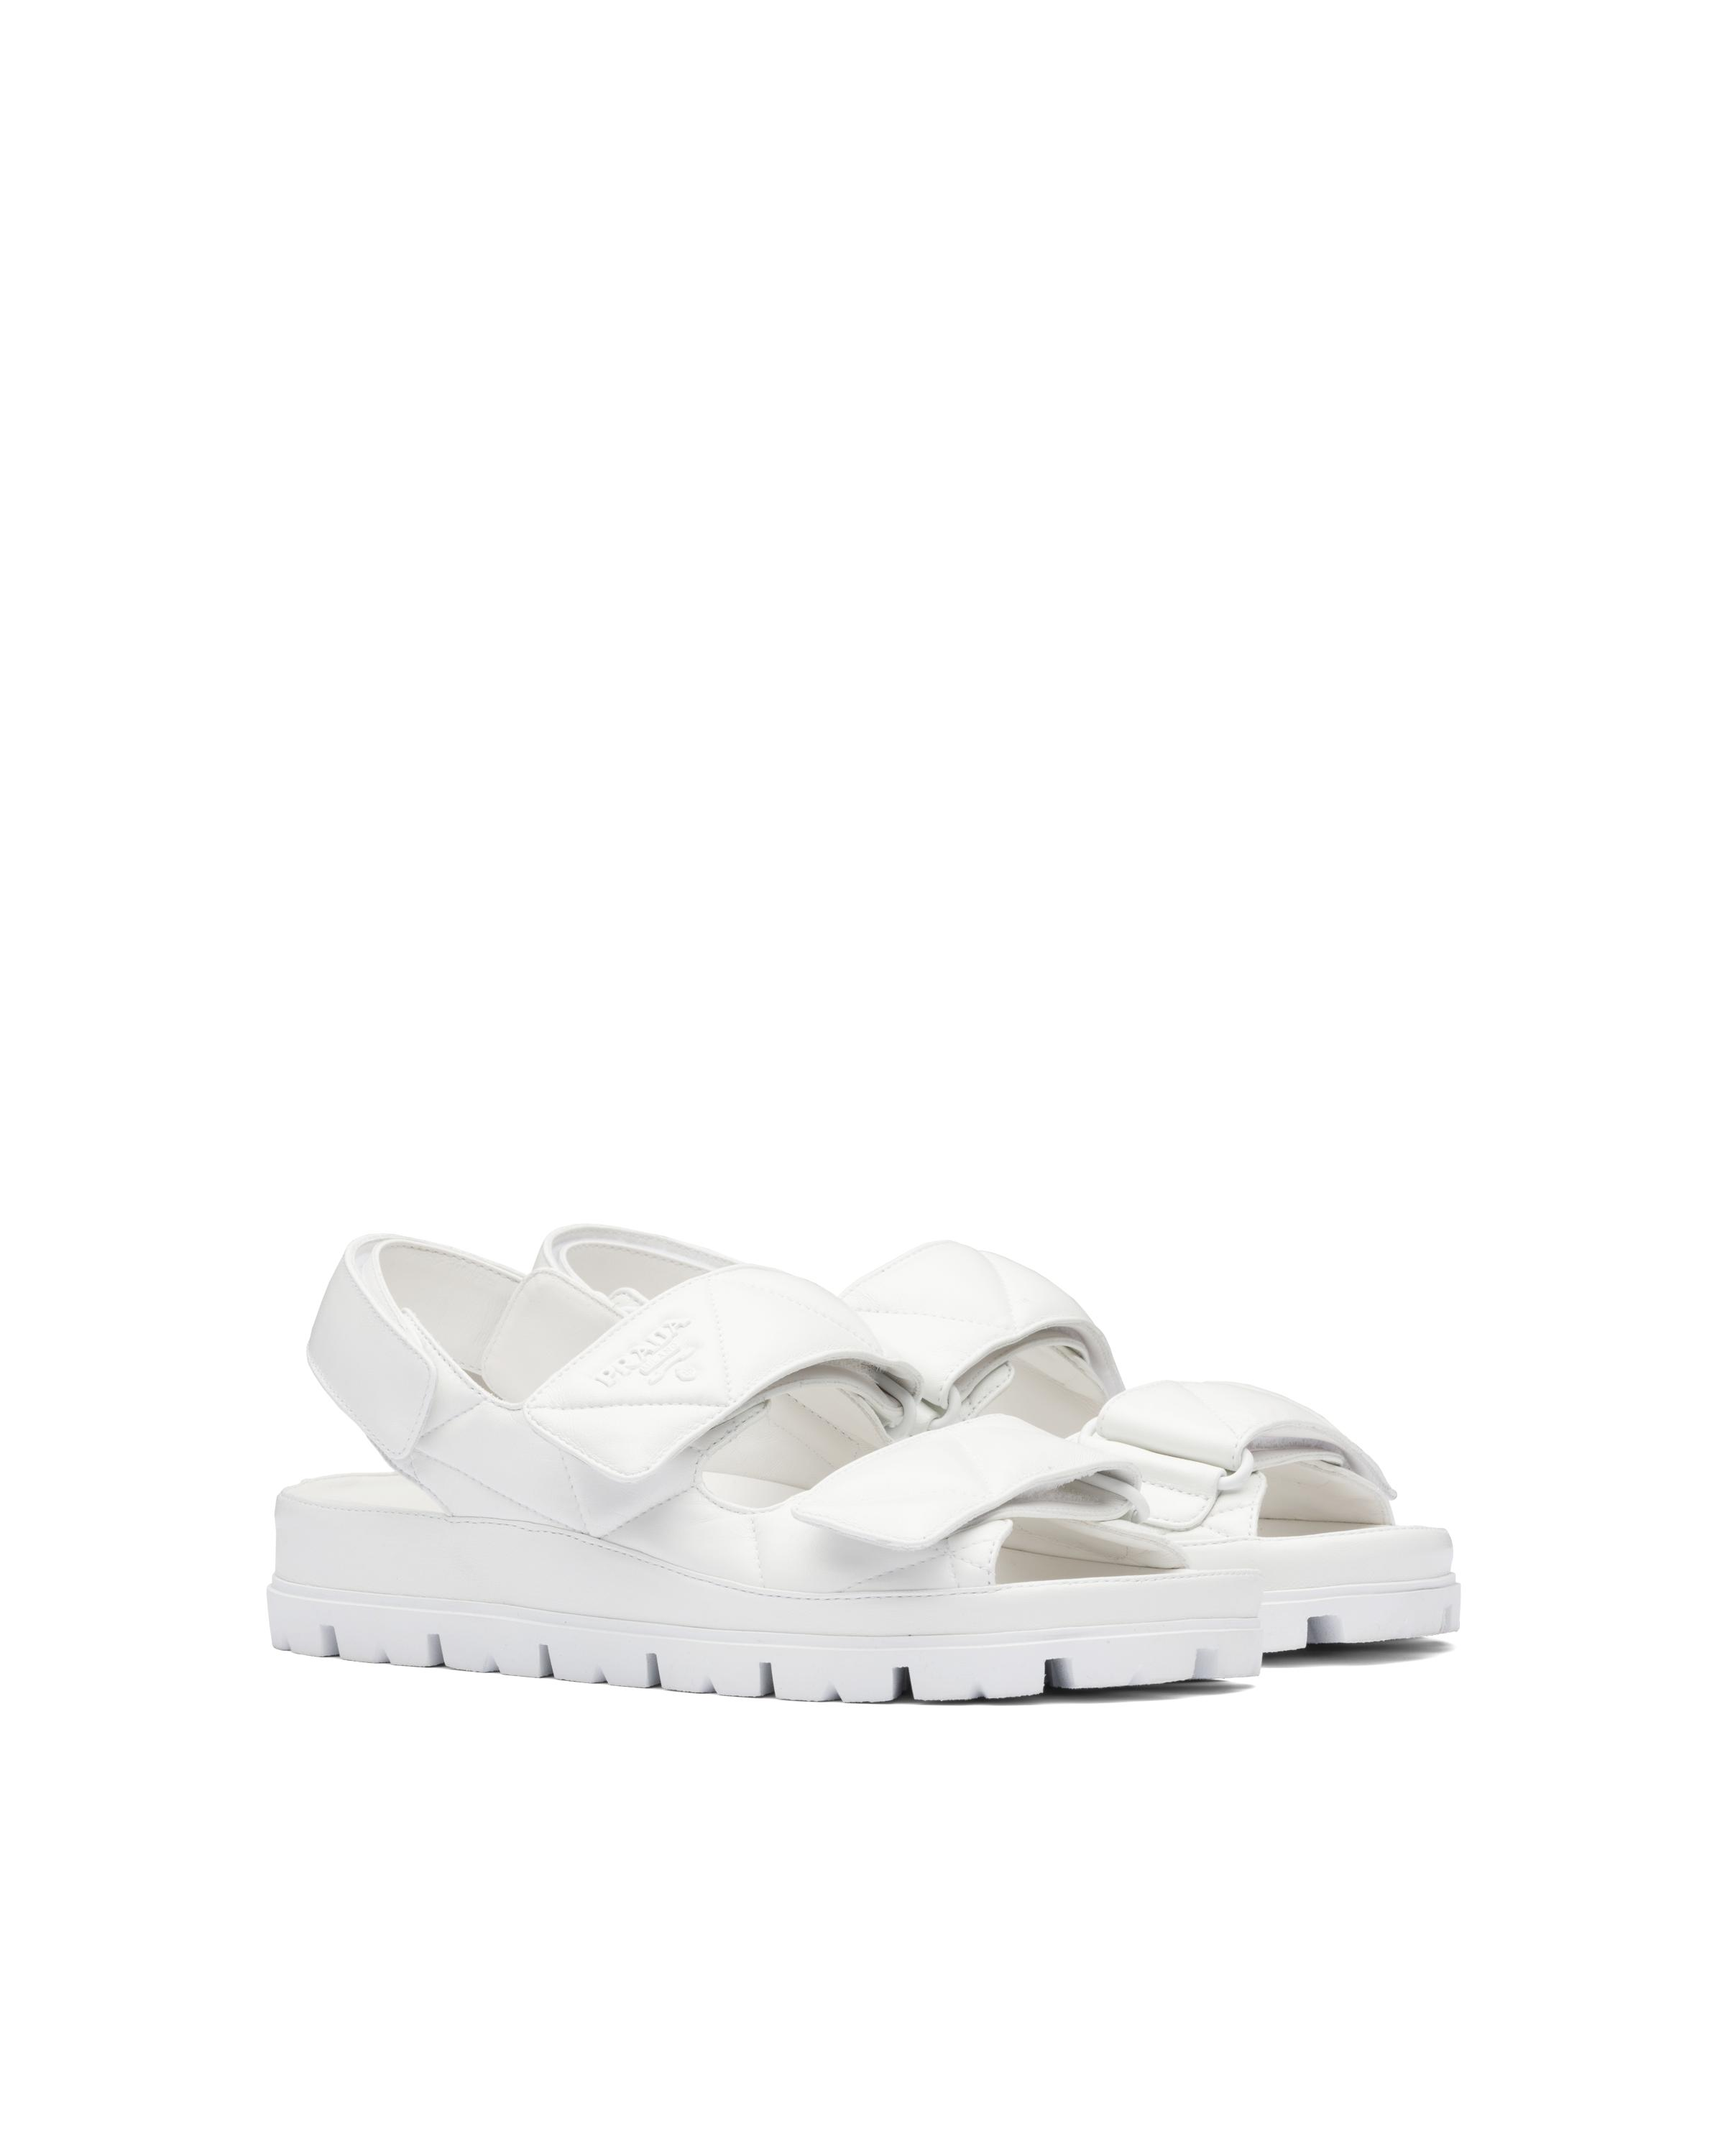 Padded Nappa Leather Sandals Women White 5